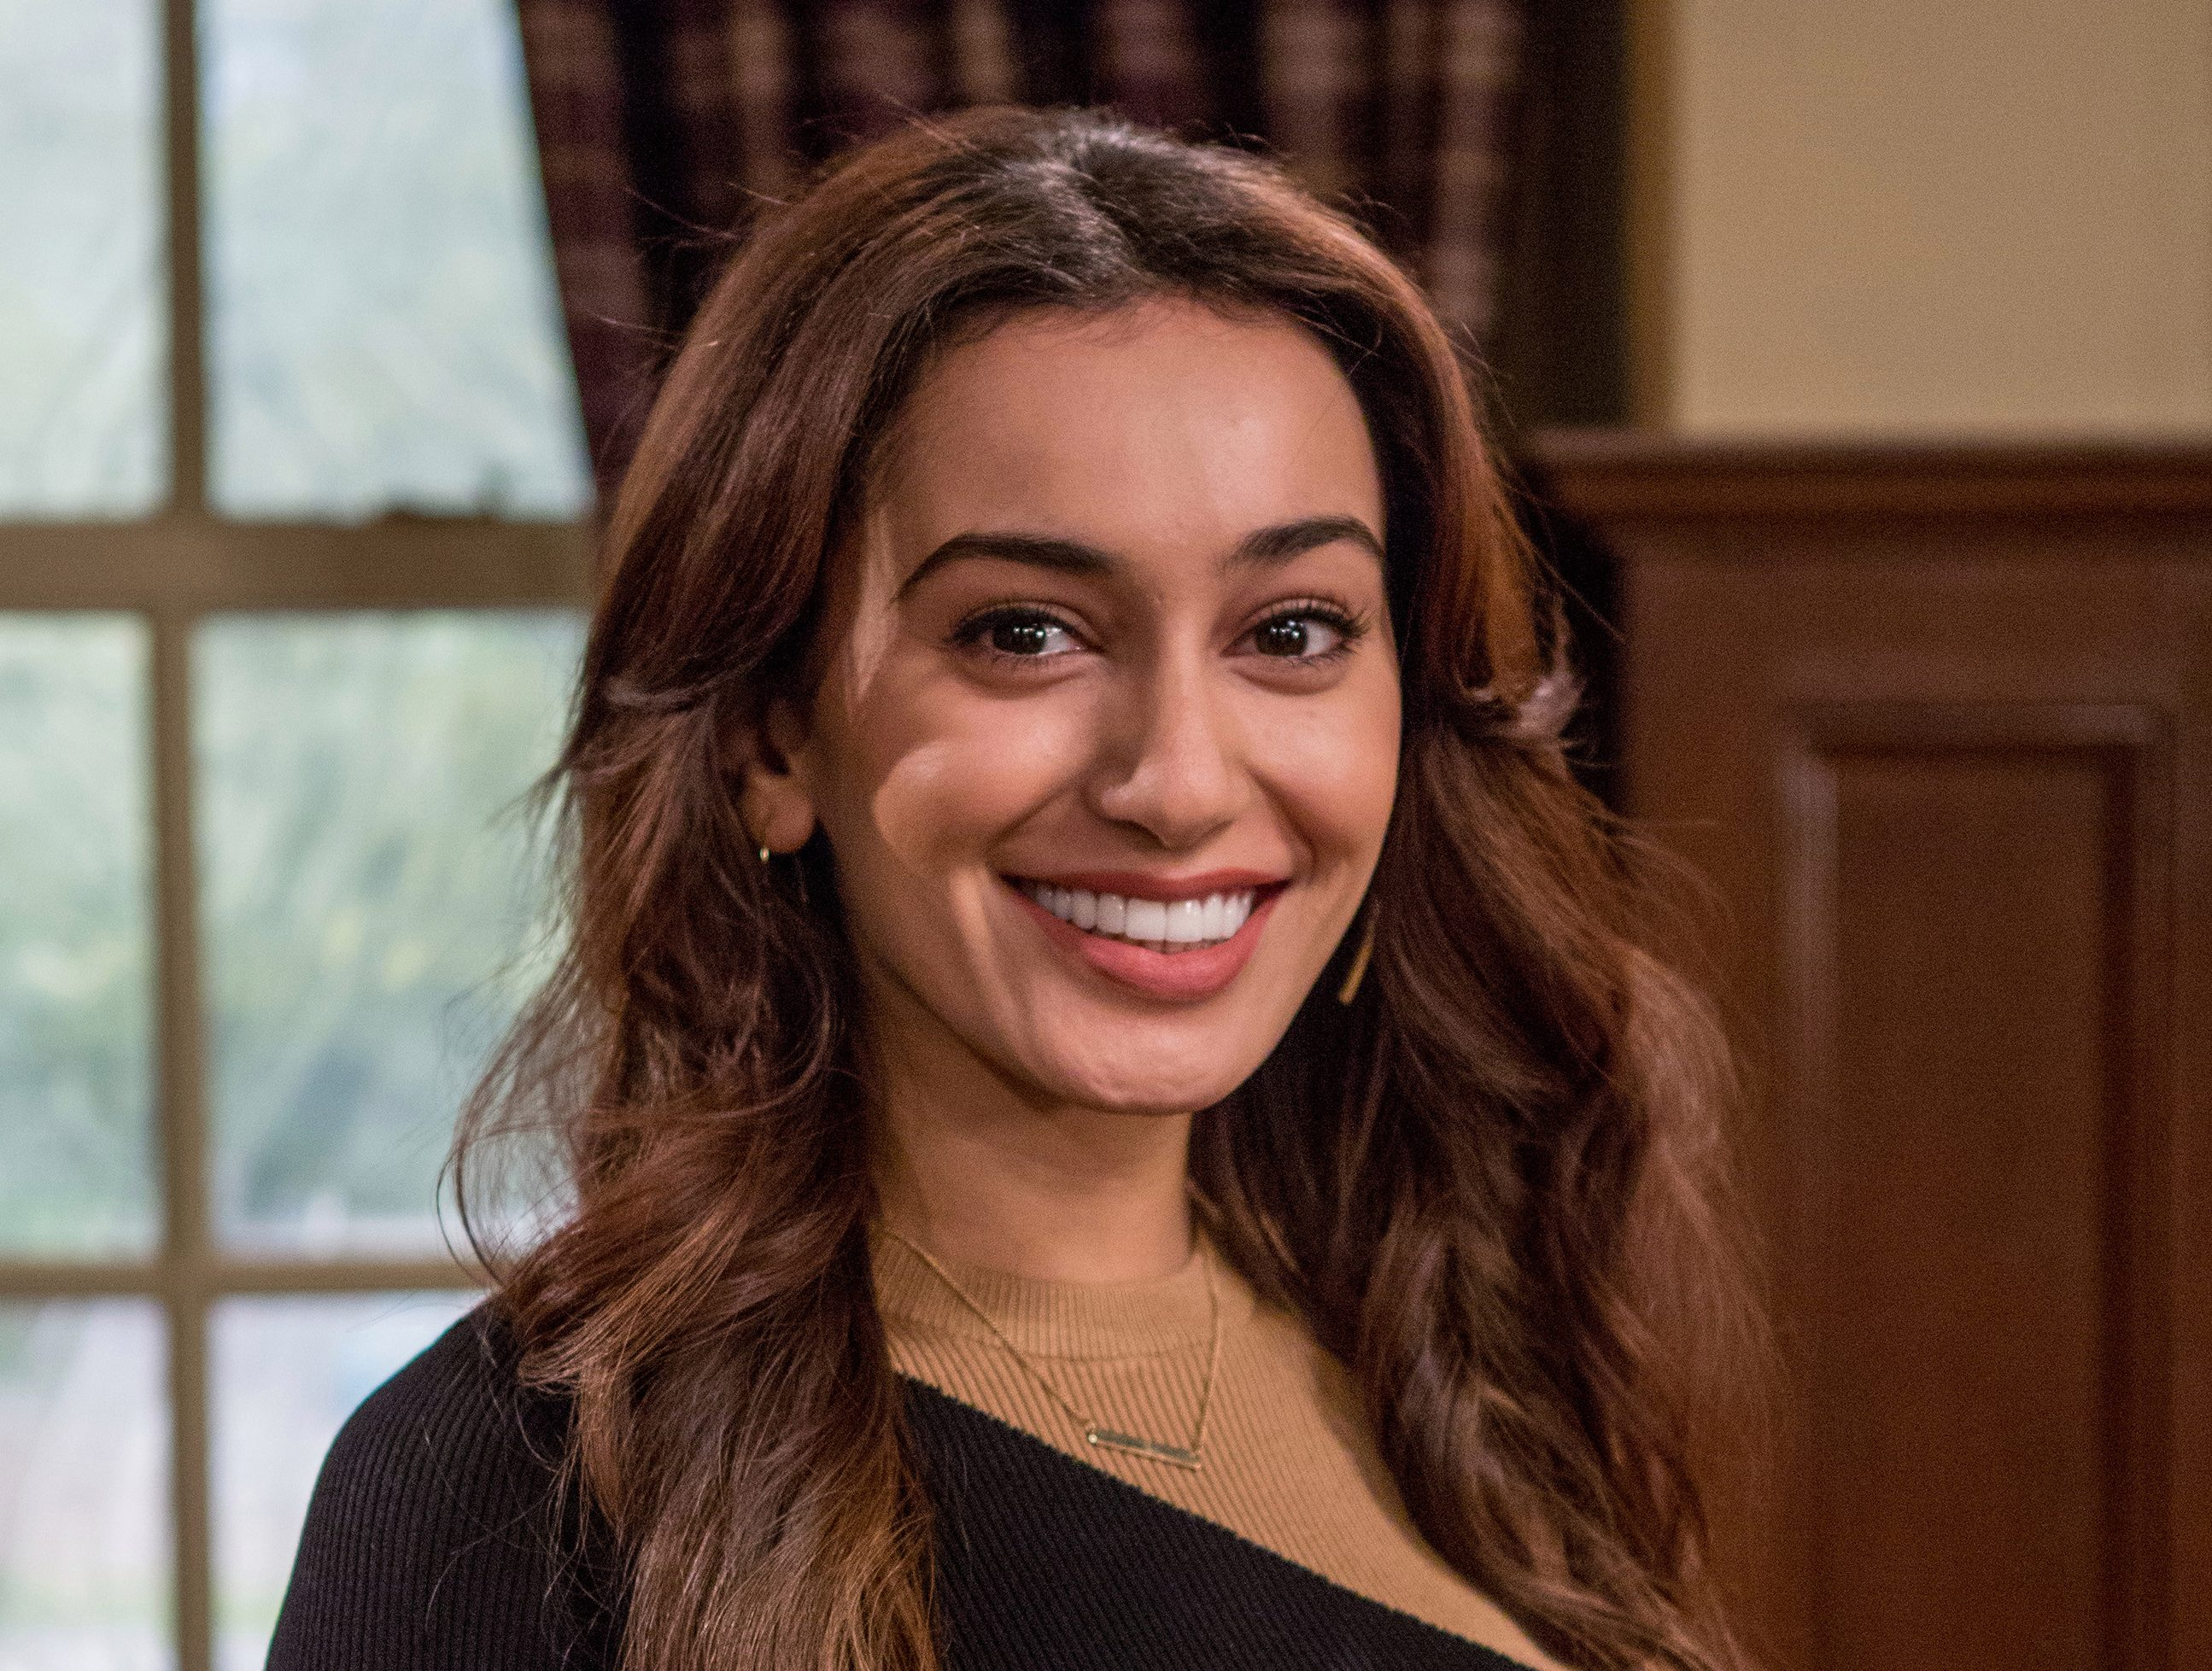 Shila Iqbal played Aiesha Richards on Emmerdale before she was sacked